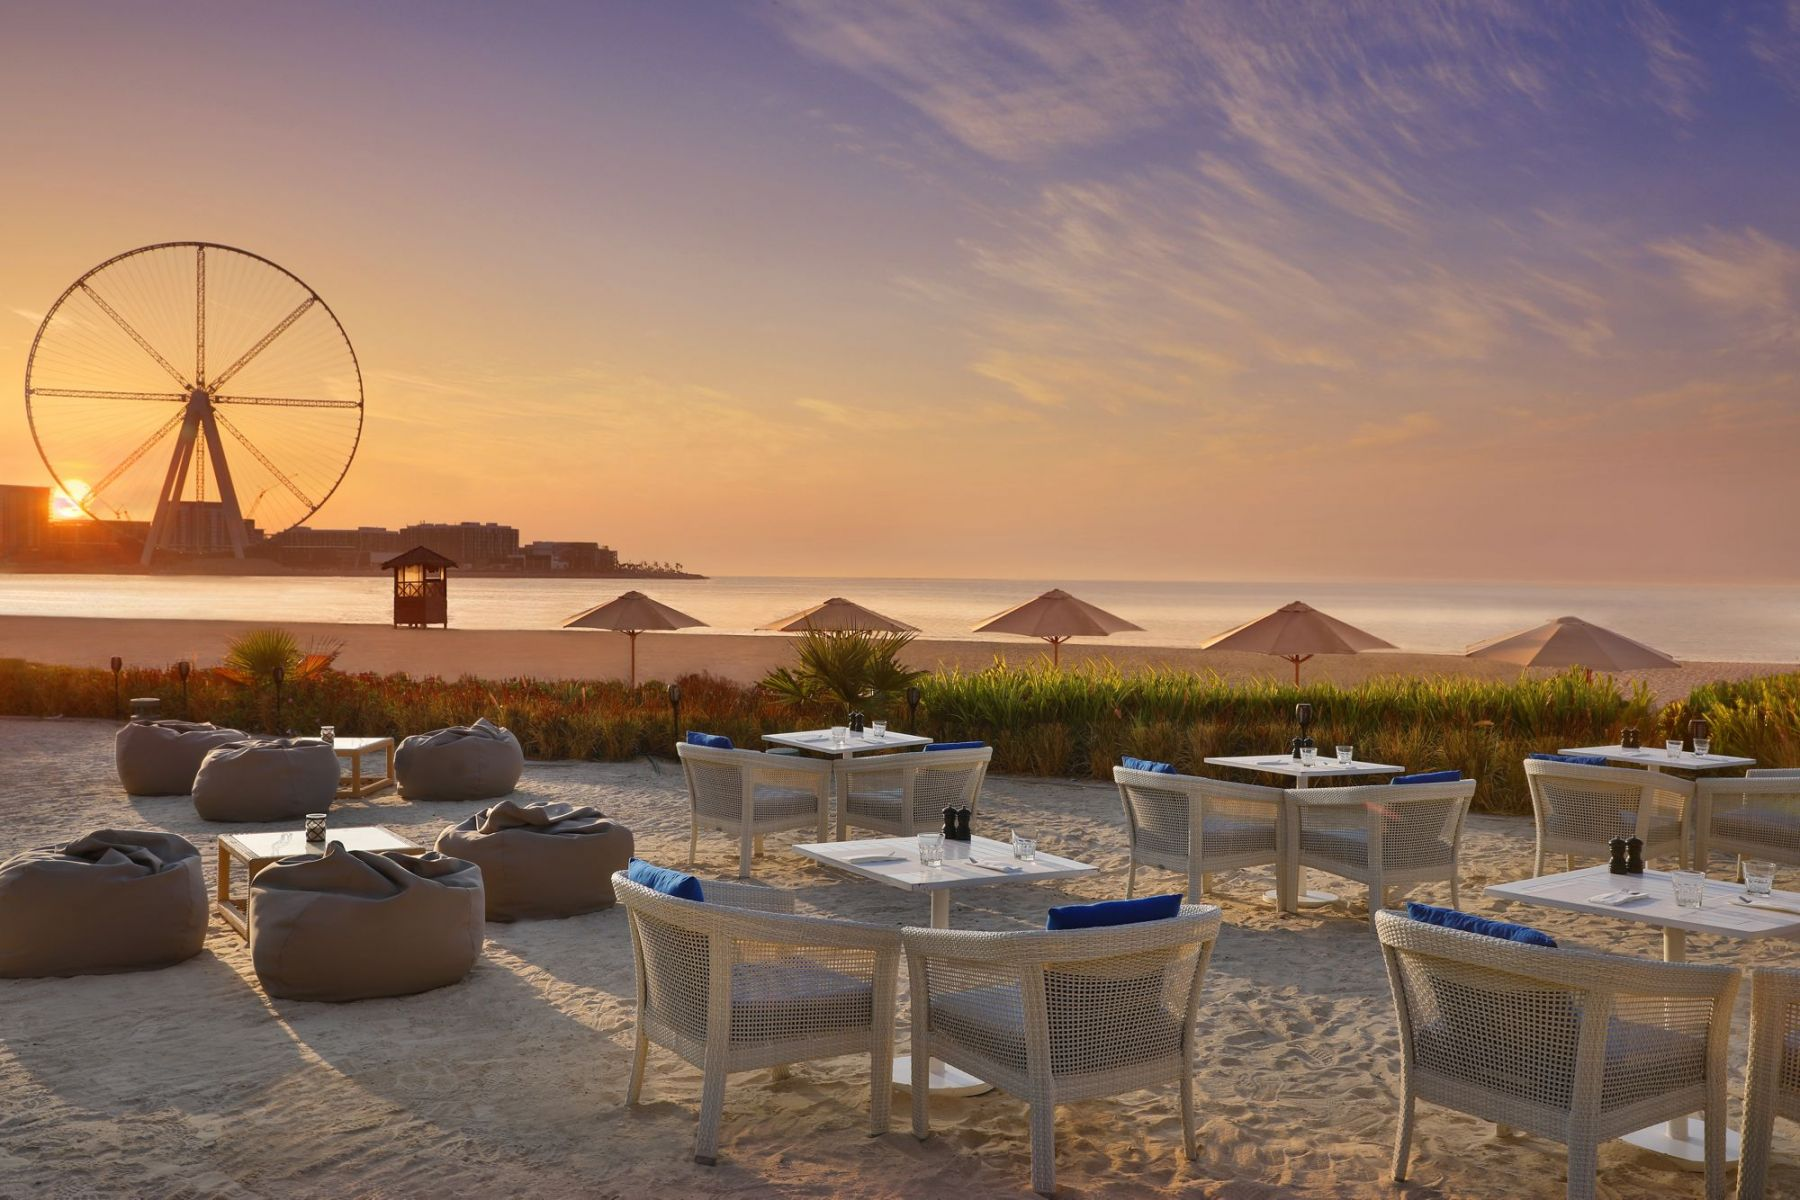 50574364-The-Ritz-Carlton-Dubai-JBR-Palm-Grill-Sunset-1